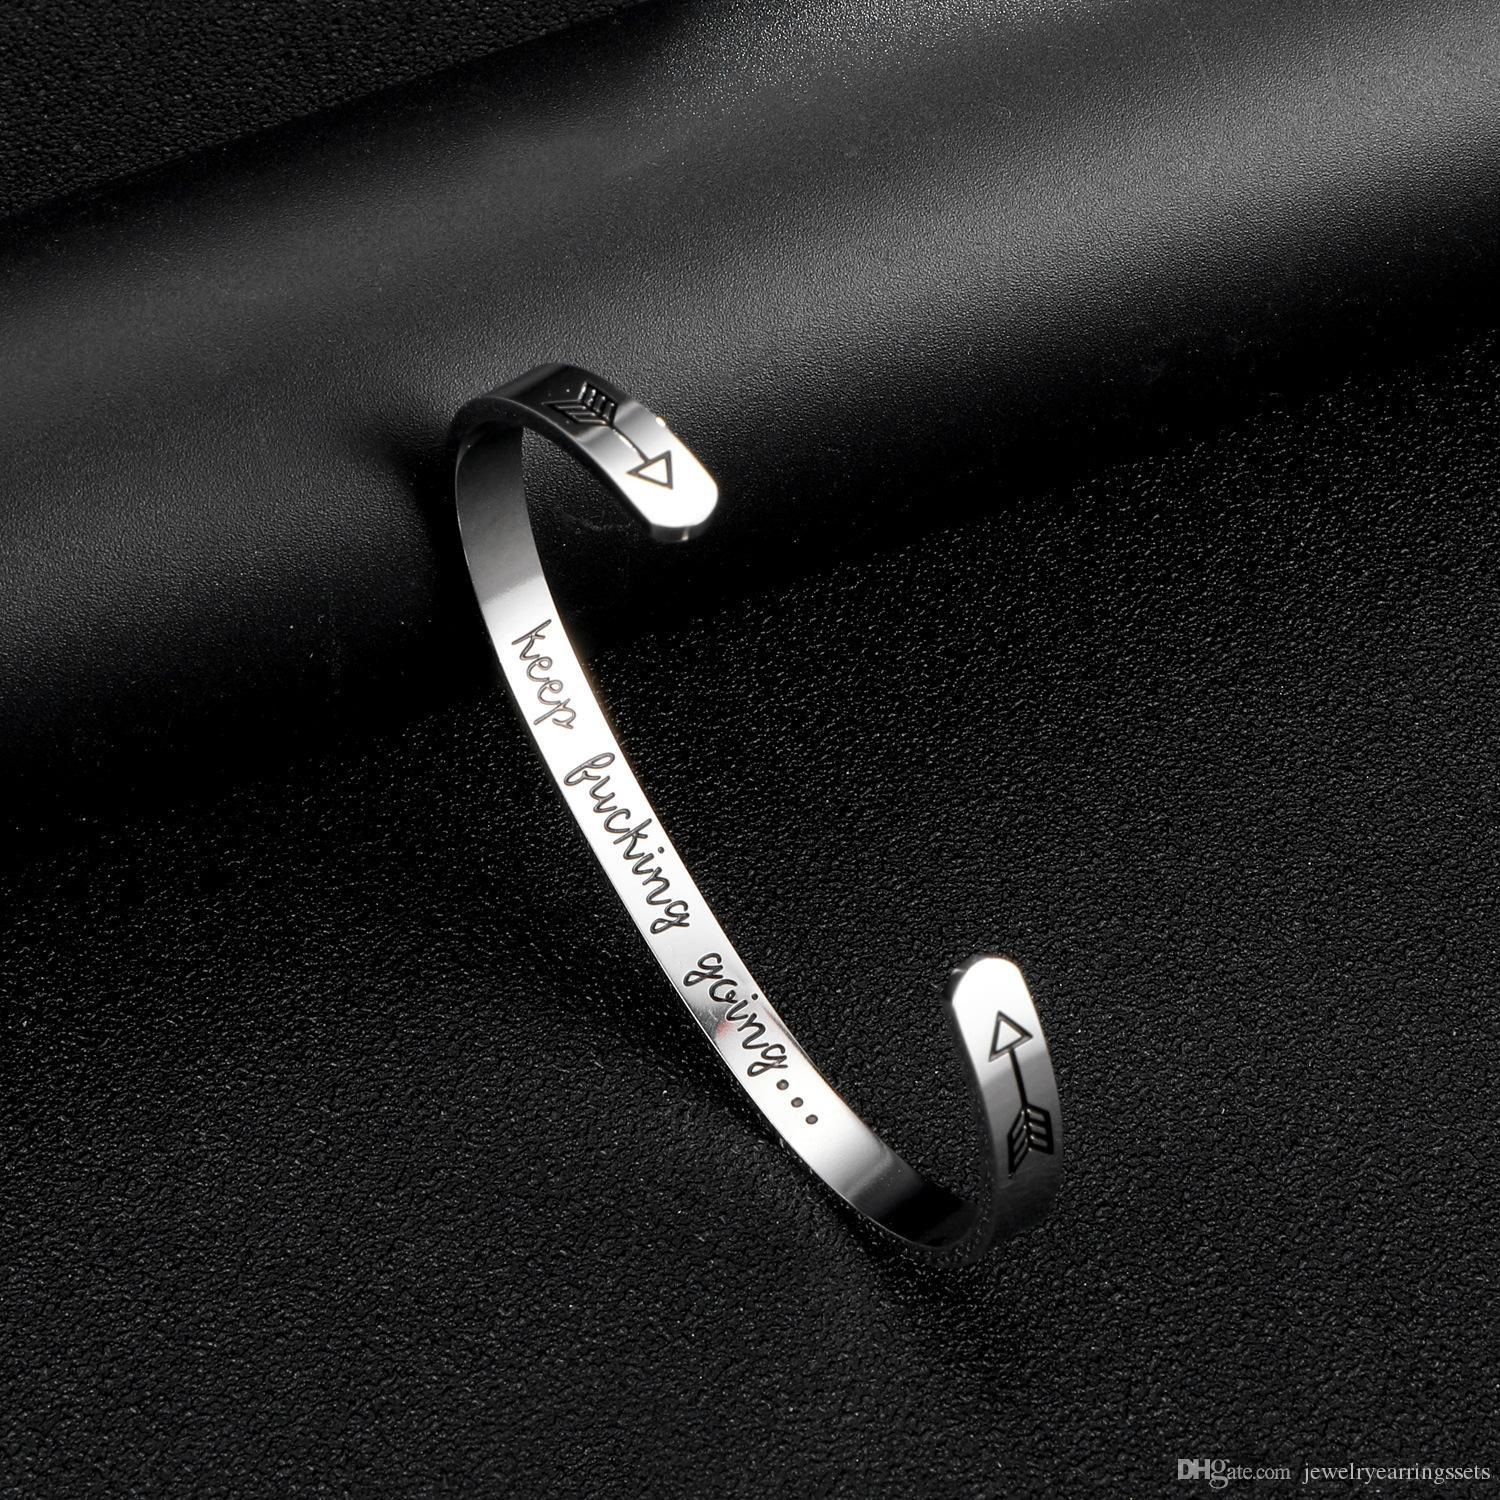 2019 Beichong Inspirational Gifts Bracelet Cuff Bangle Women Mantra Quote Engraved Stainless Steel Silver Keep Fucking Going Bracelet From